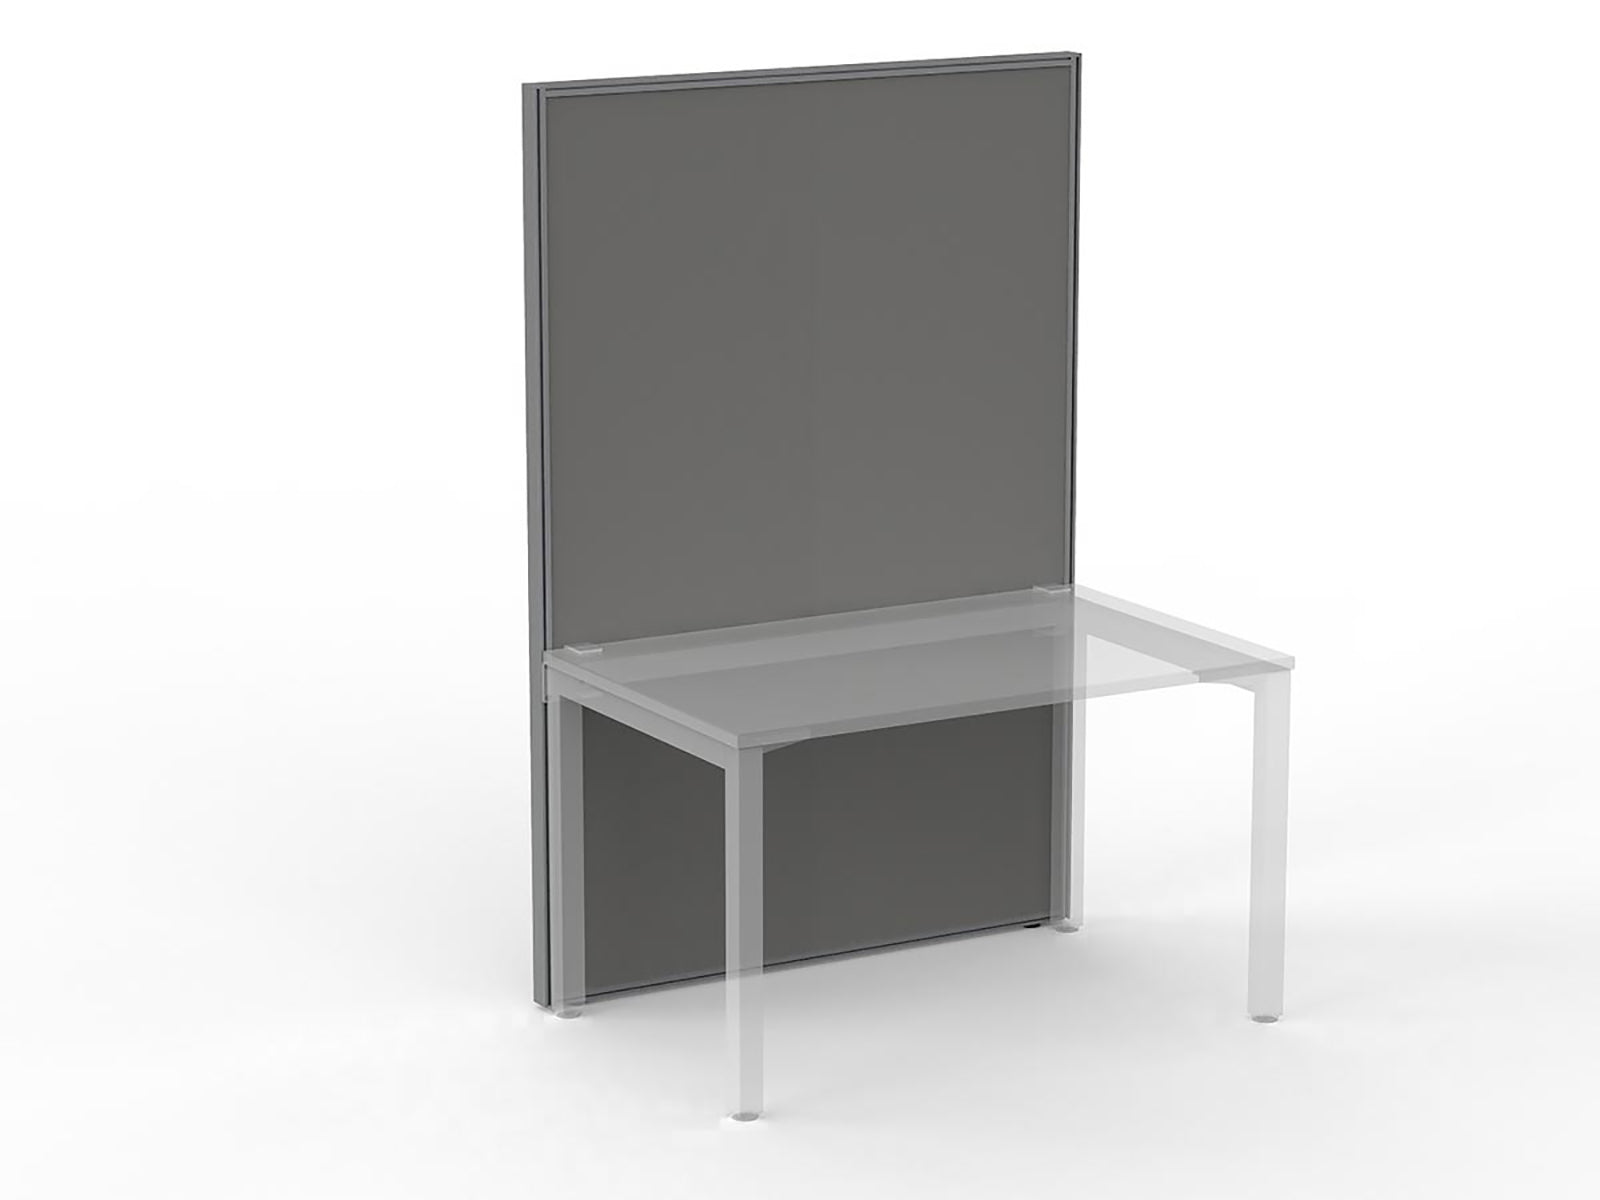 Studio50 White Frame Screen 1.8 x 1.2m - Workspace Furniture Office Partition